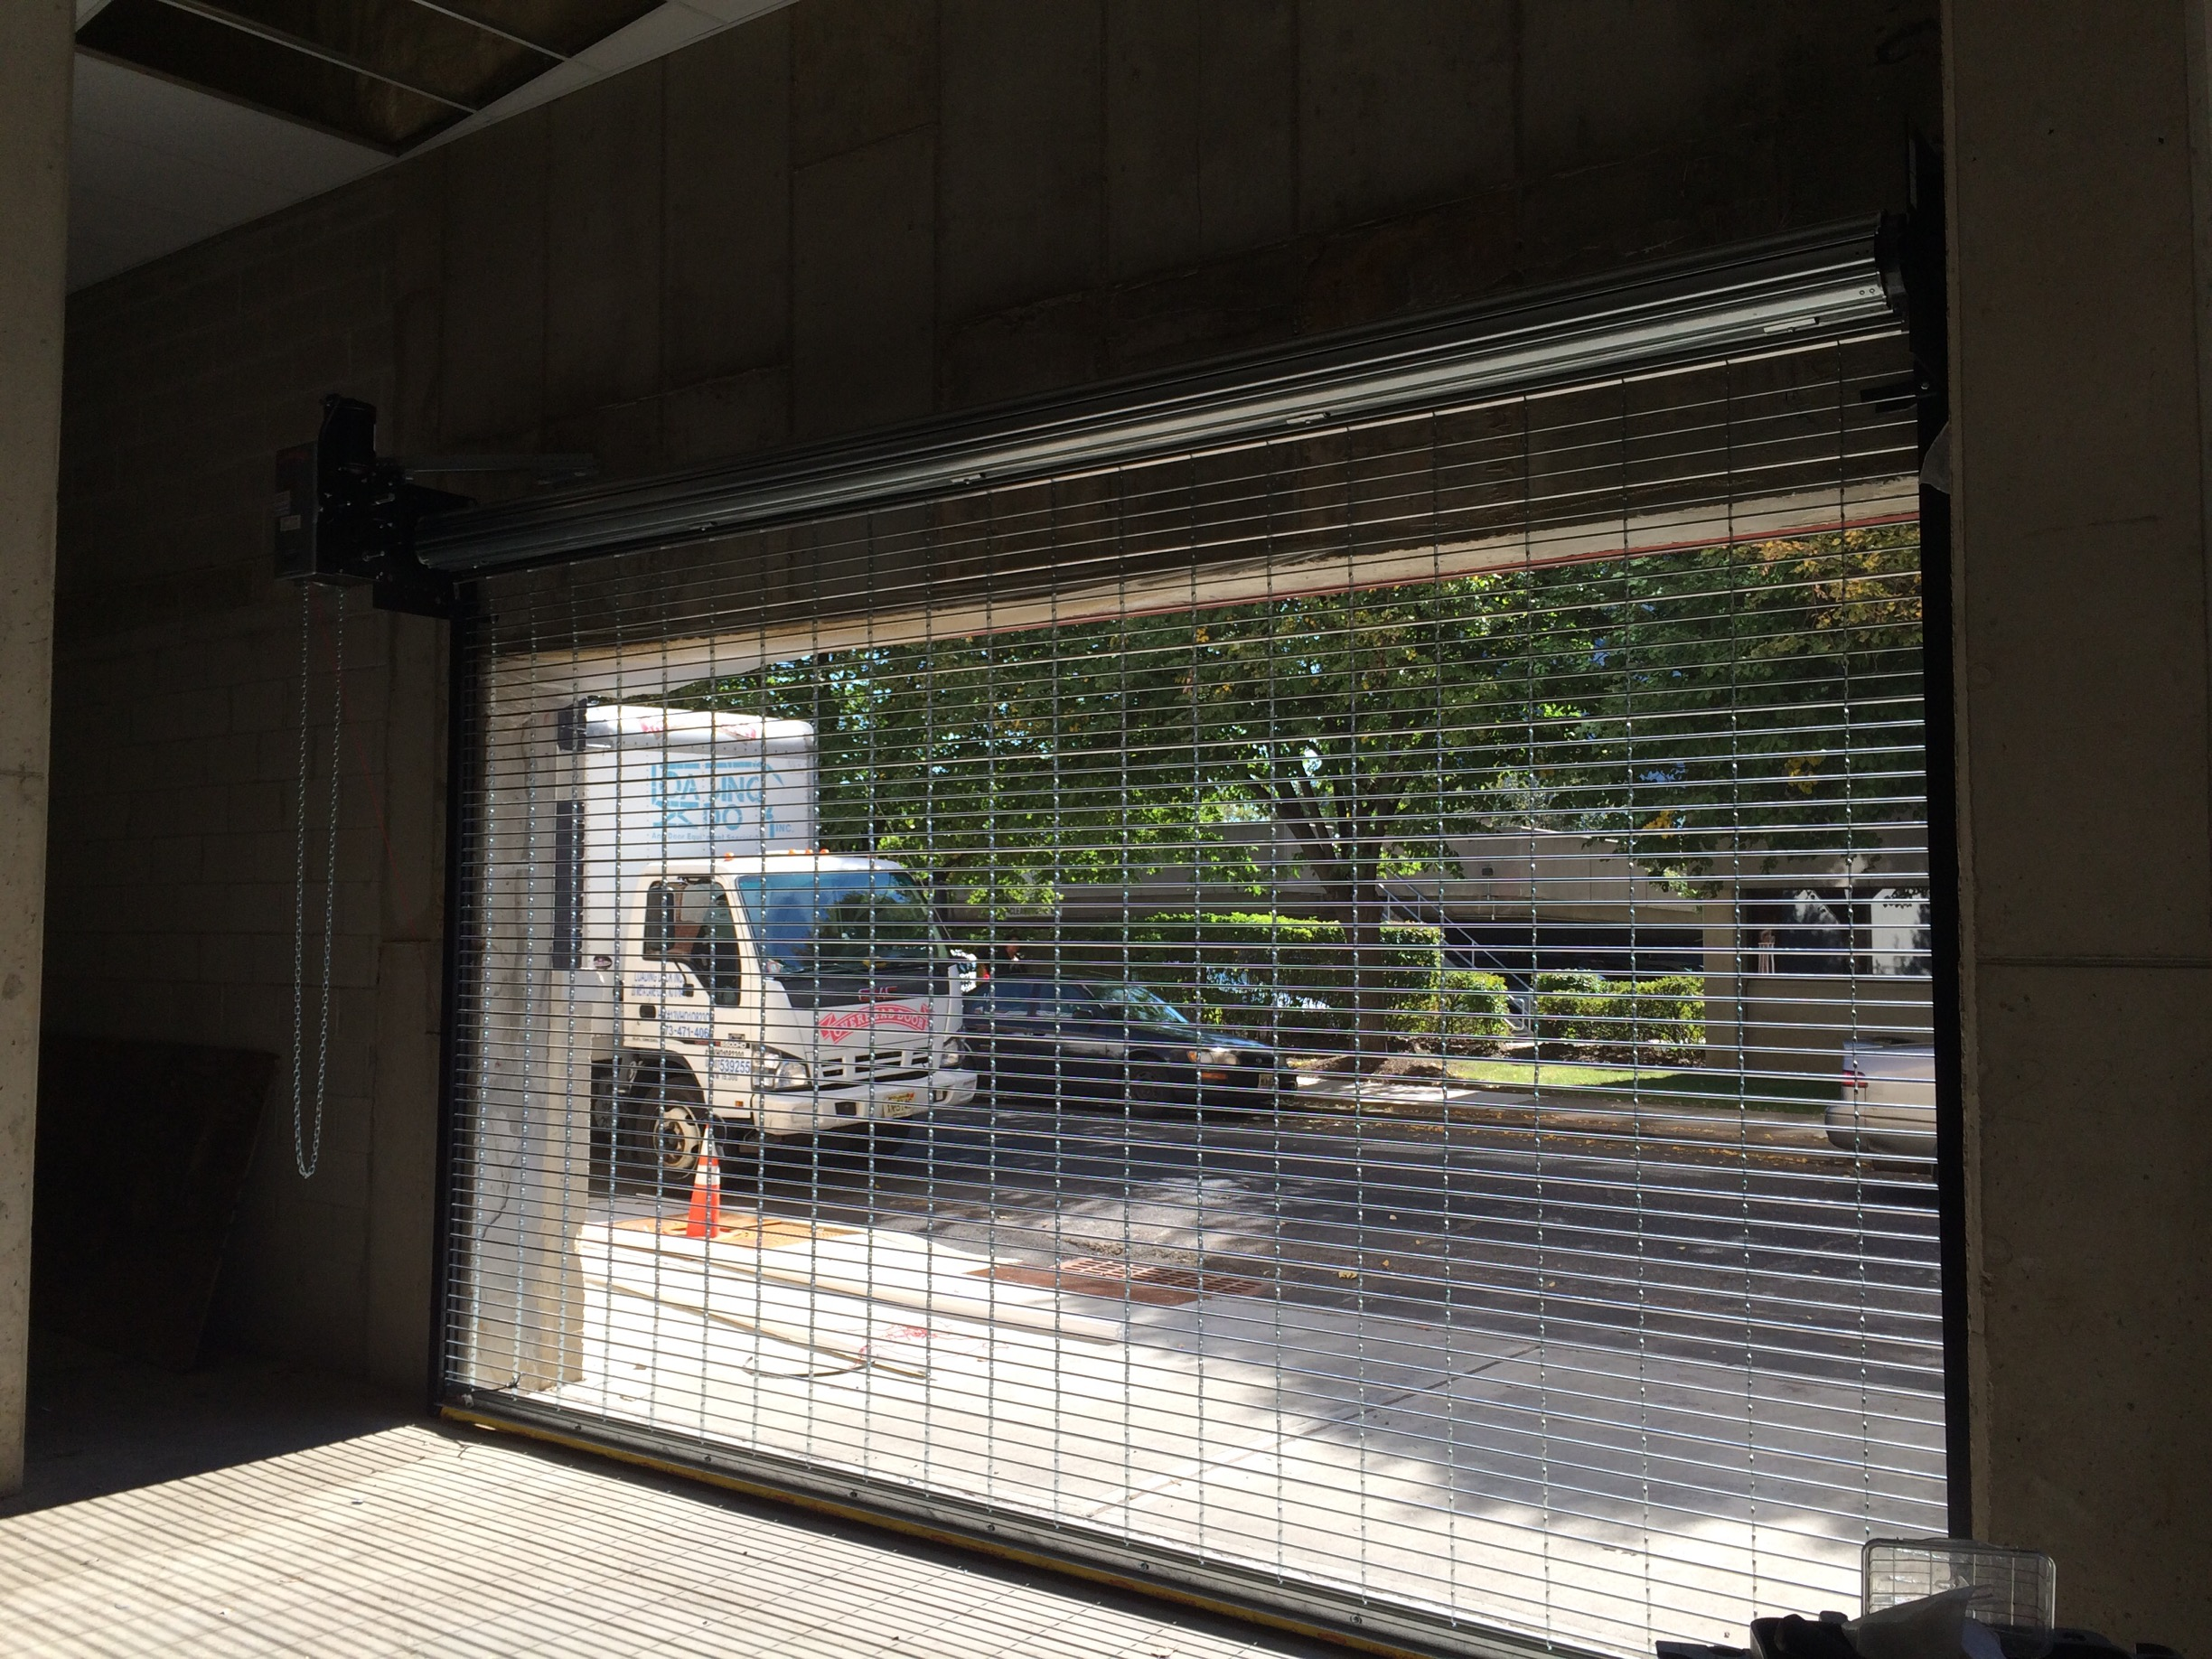 screened sliding double ft in u door garage free kotulascom x for screen inspect home